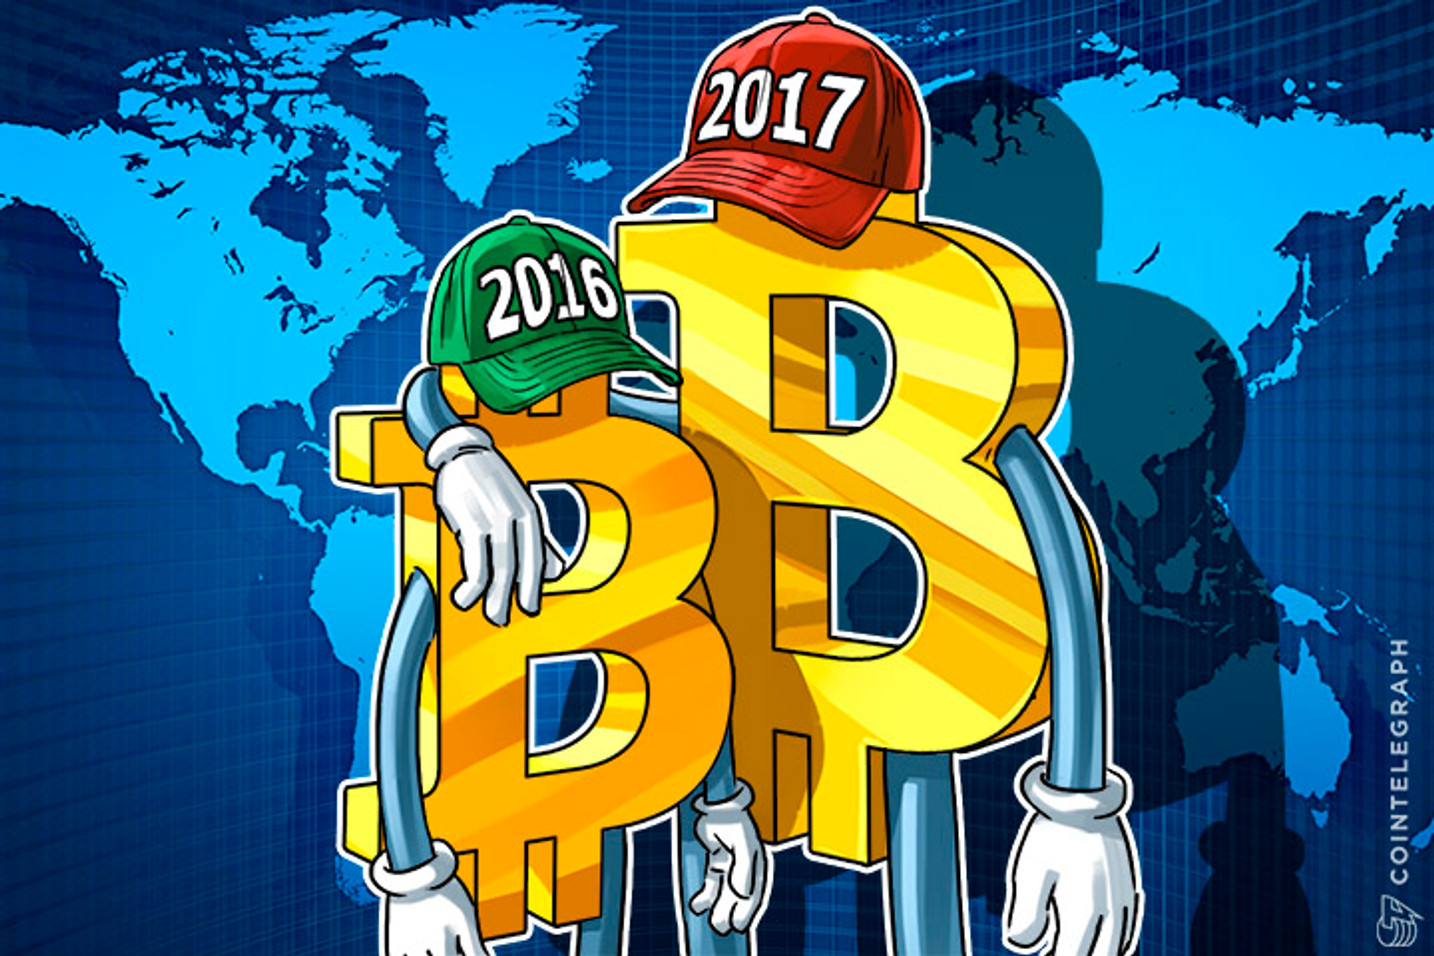 Vinny Lingham: Bitcoin Price Will Reach $3,000 in 2017